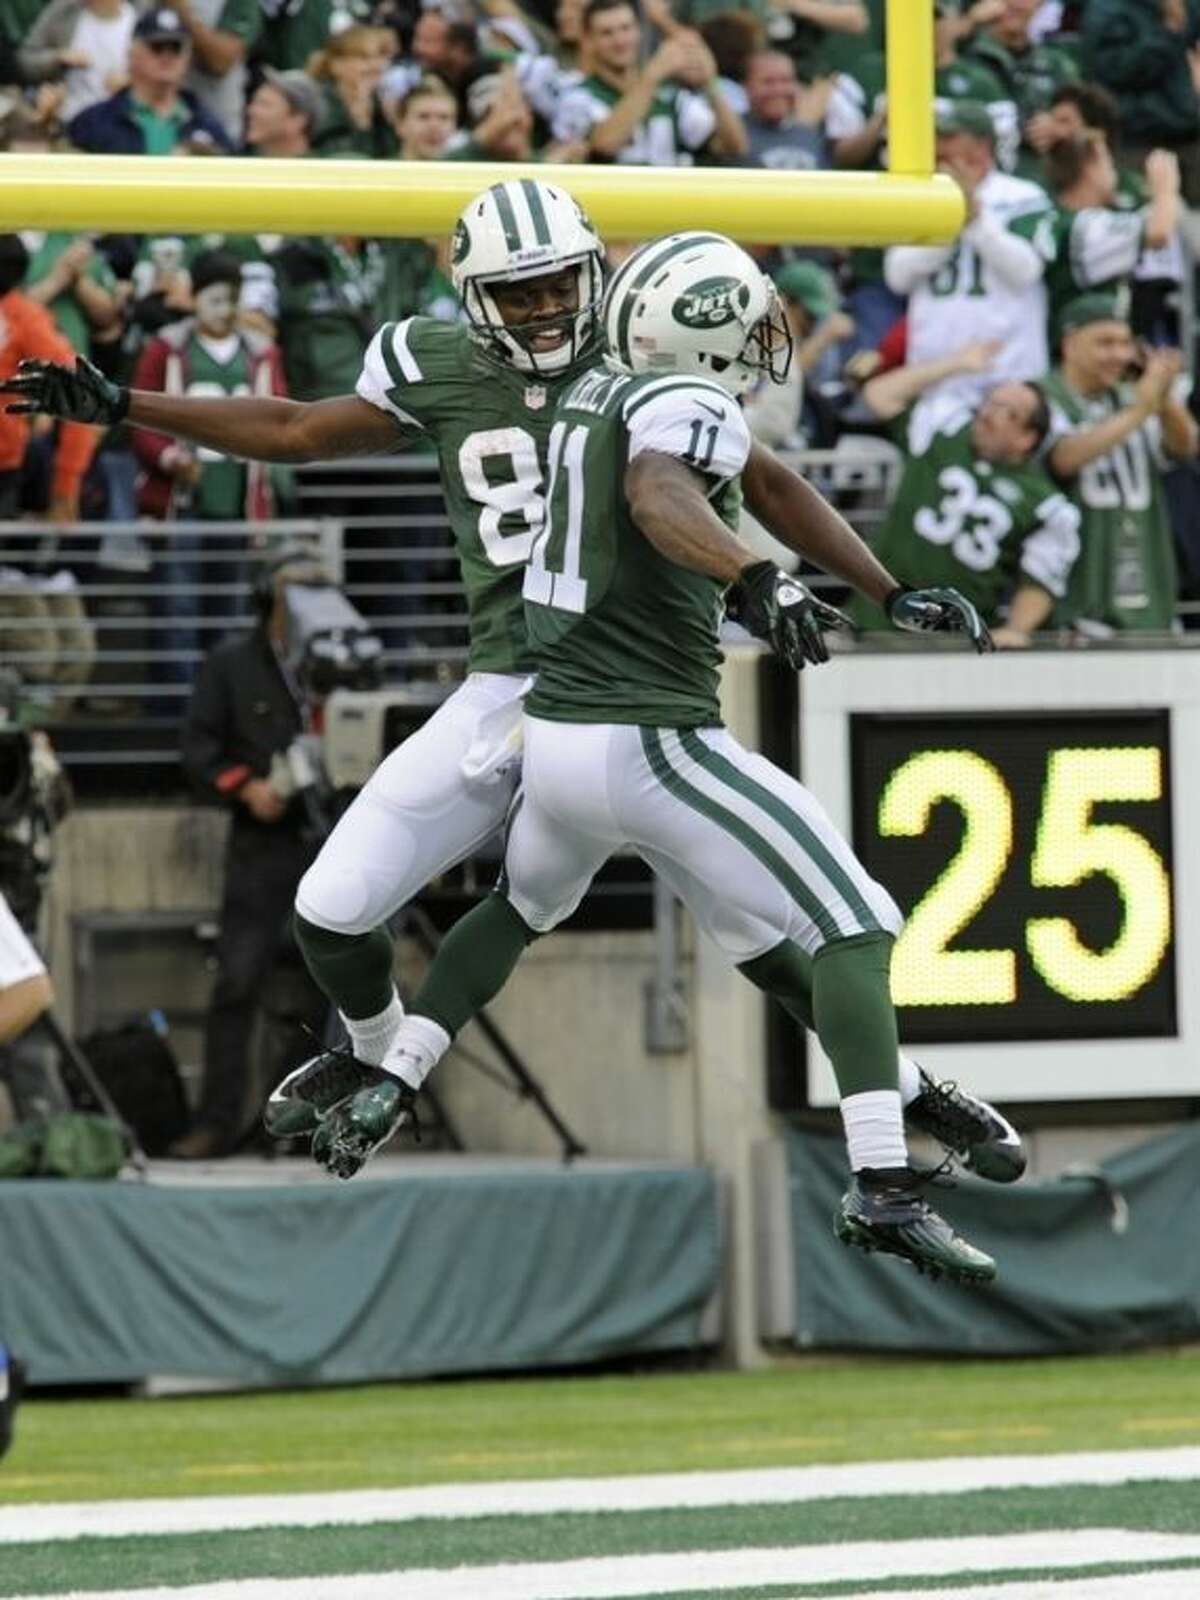 New York Jets wide receiver Stephen Hill, left, celebrates with teammate Jeremy Kerley after scoring a touchdown during the first half of an NFL football game against the Buffalo Bills Sunday, Sept. 22, 2013, in East Rutherford, N.J. (AP Photo/Bill Kostroun)